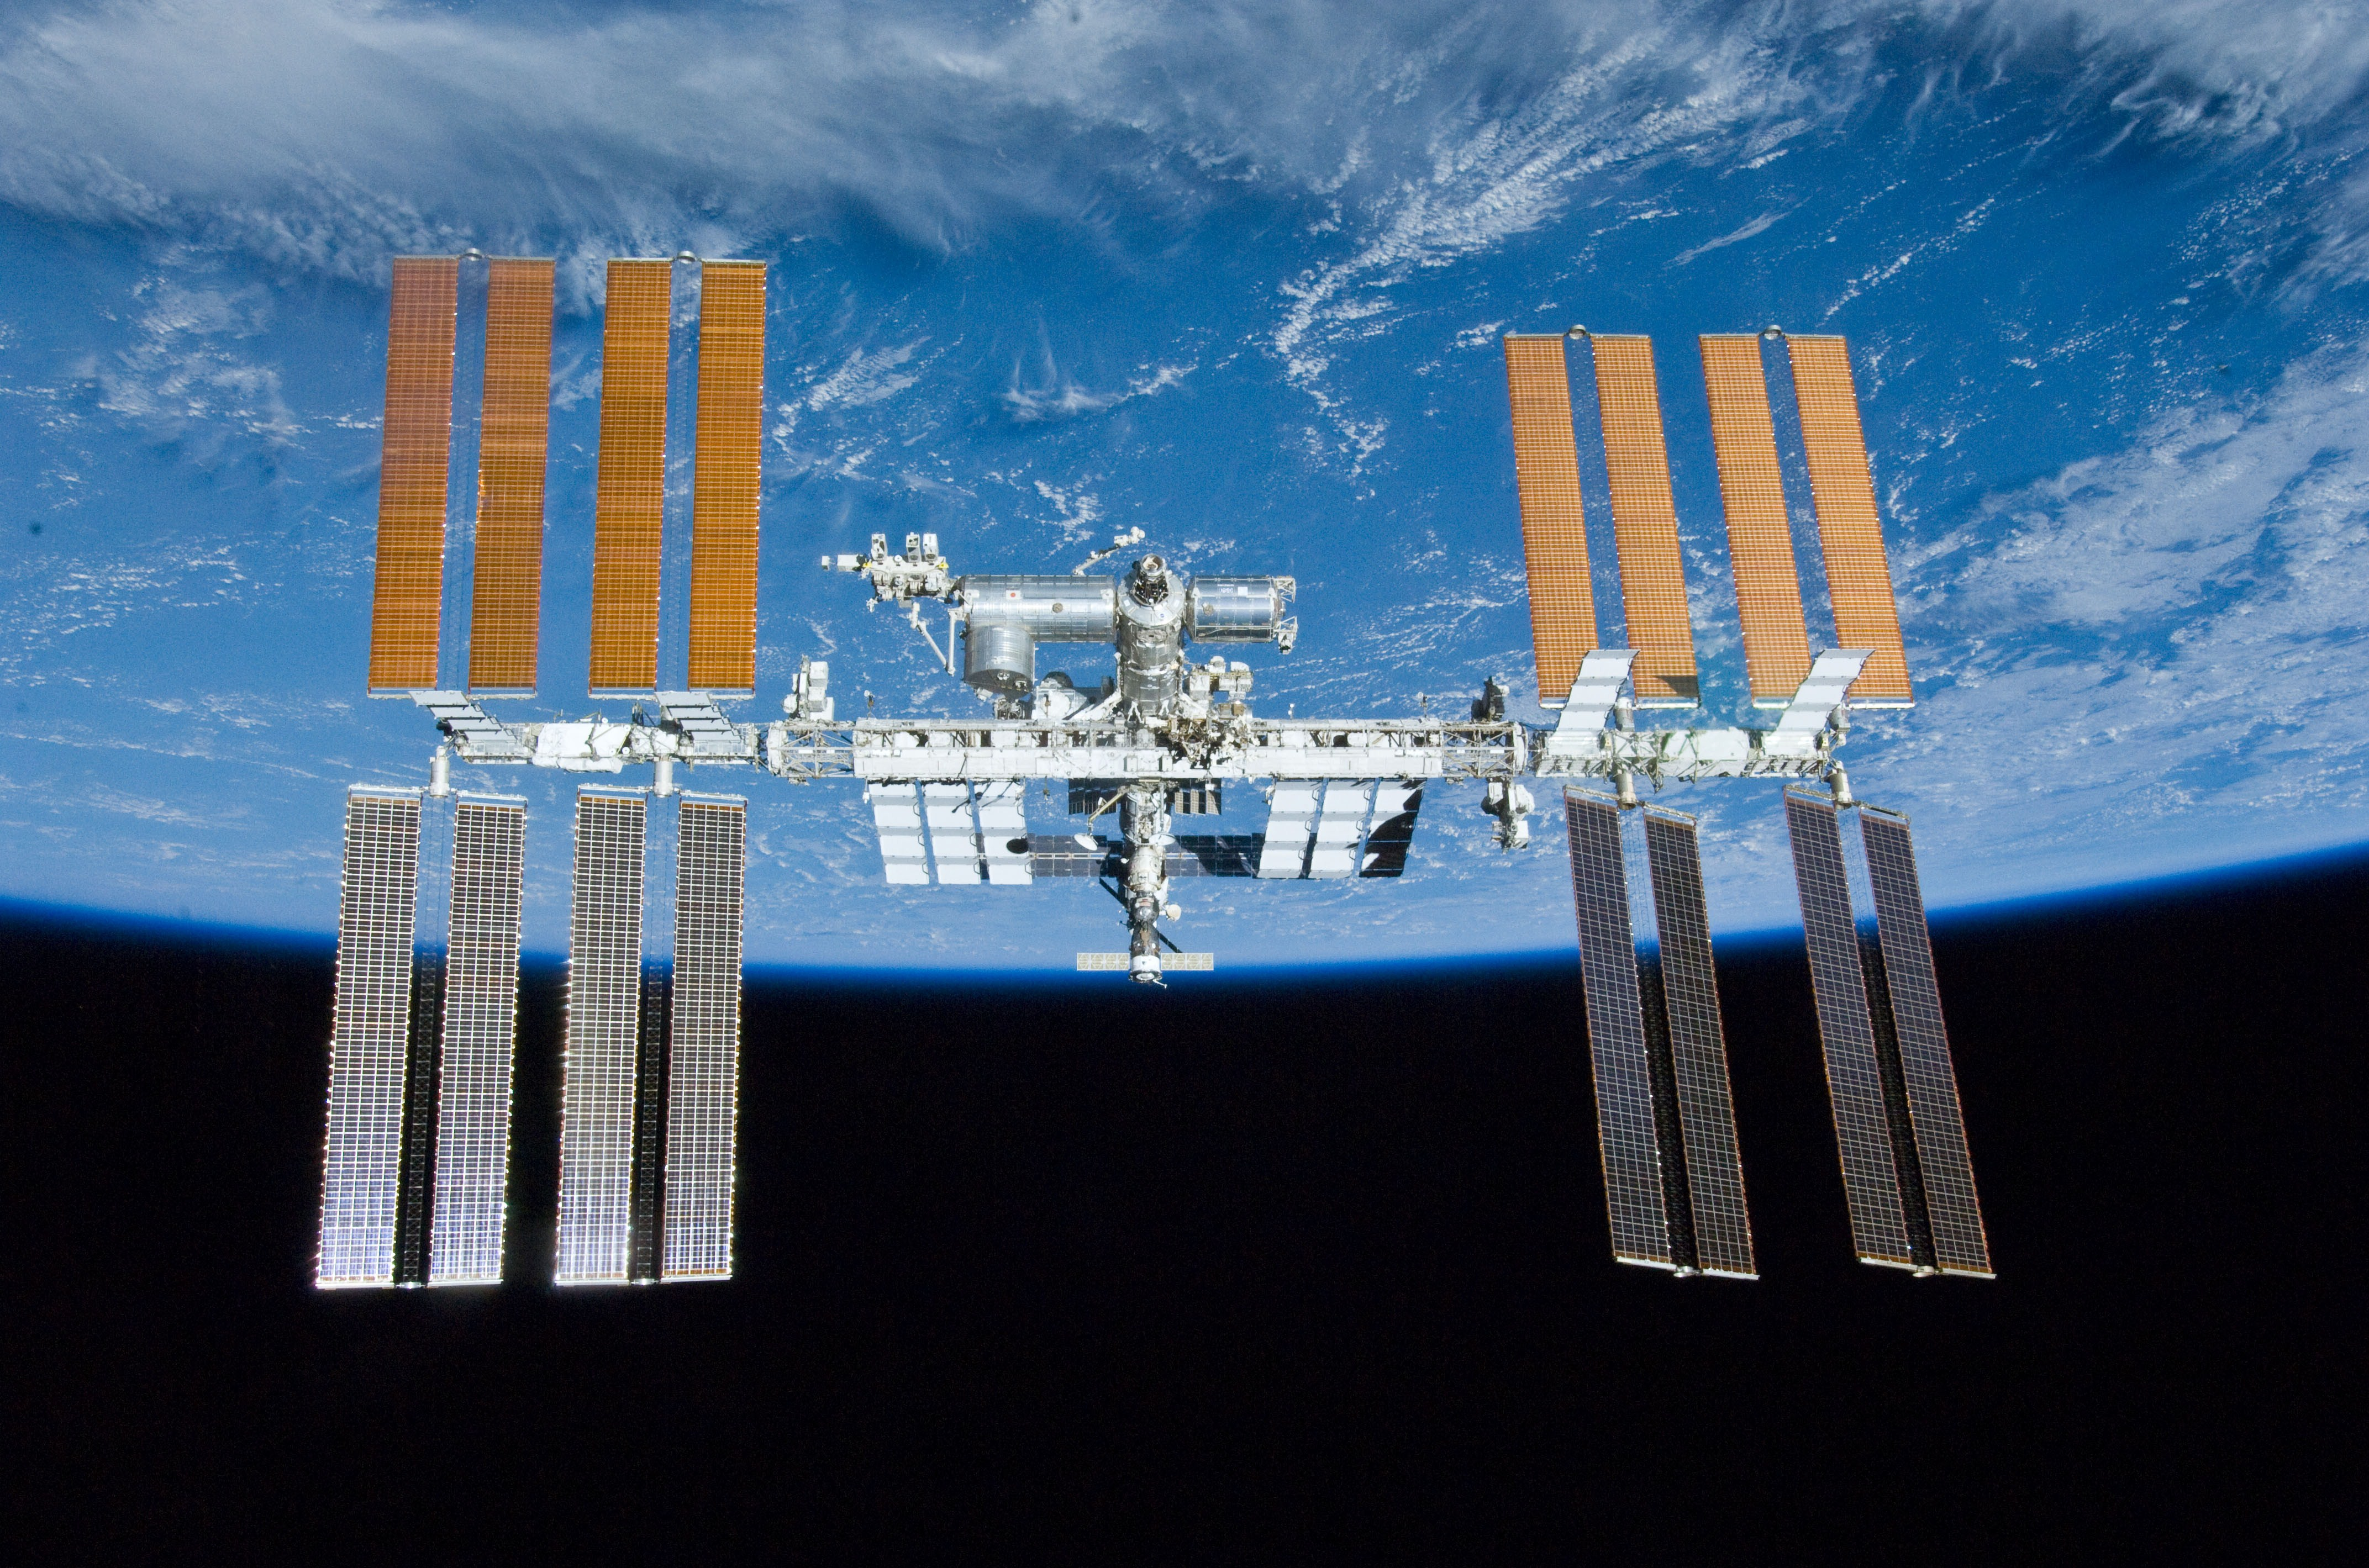 AleaSoft - International Space Station photovoltaic panels